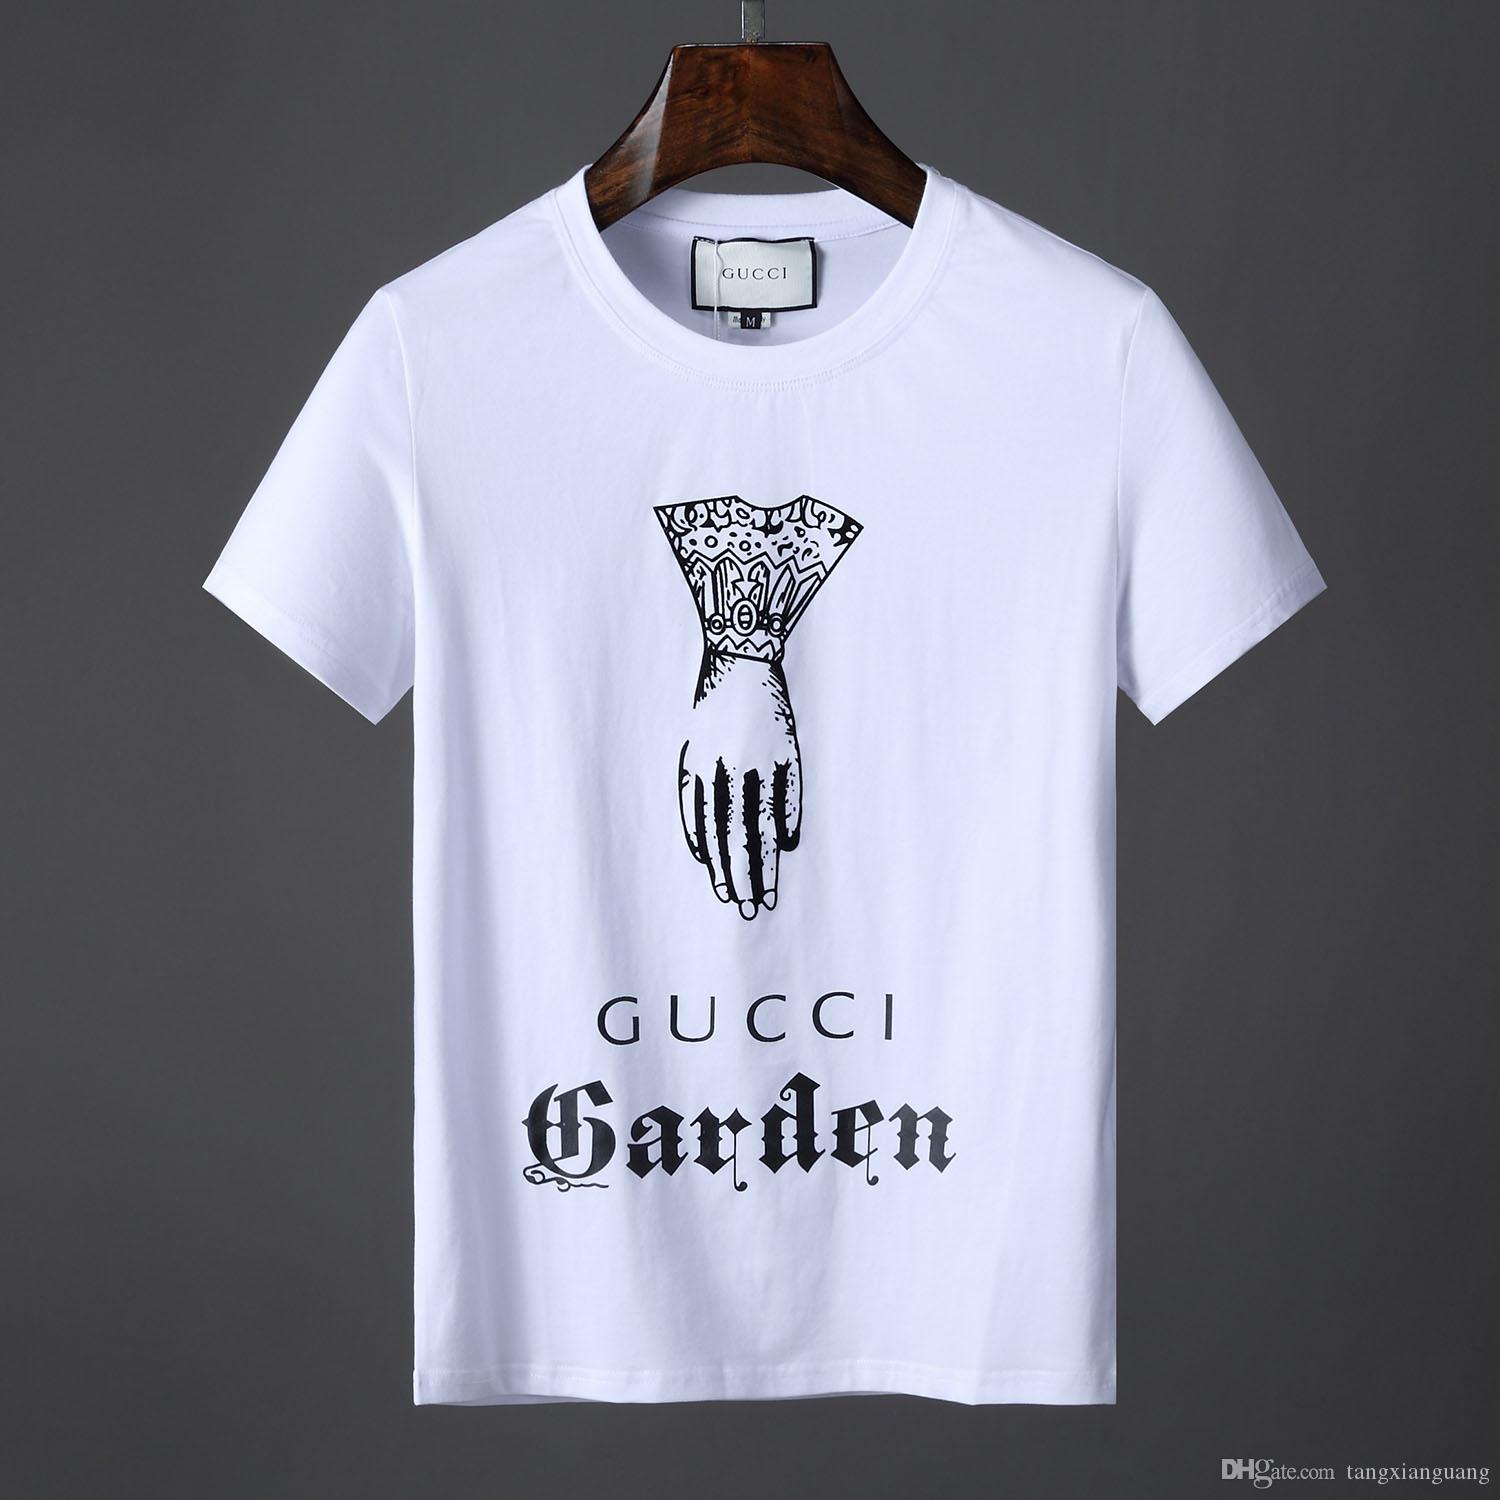 943e86f2eee9 2019 NEW Fashion Luxury Brand Designer T Shirt Hip Hop White Mens Clothing  Casual T Shirts For Men With Letters Printed TShirt Size M 3XL From  Tangxianguang ...